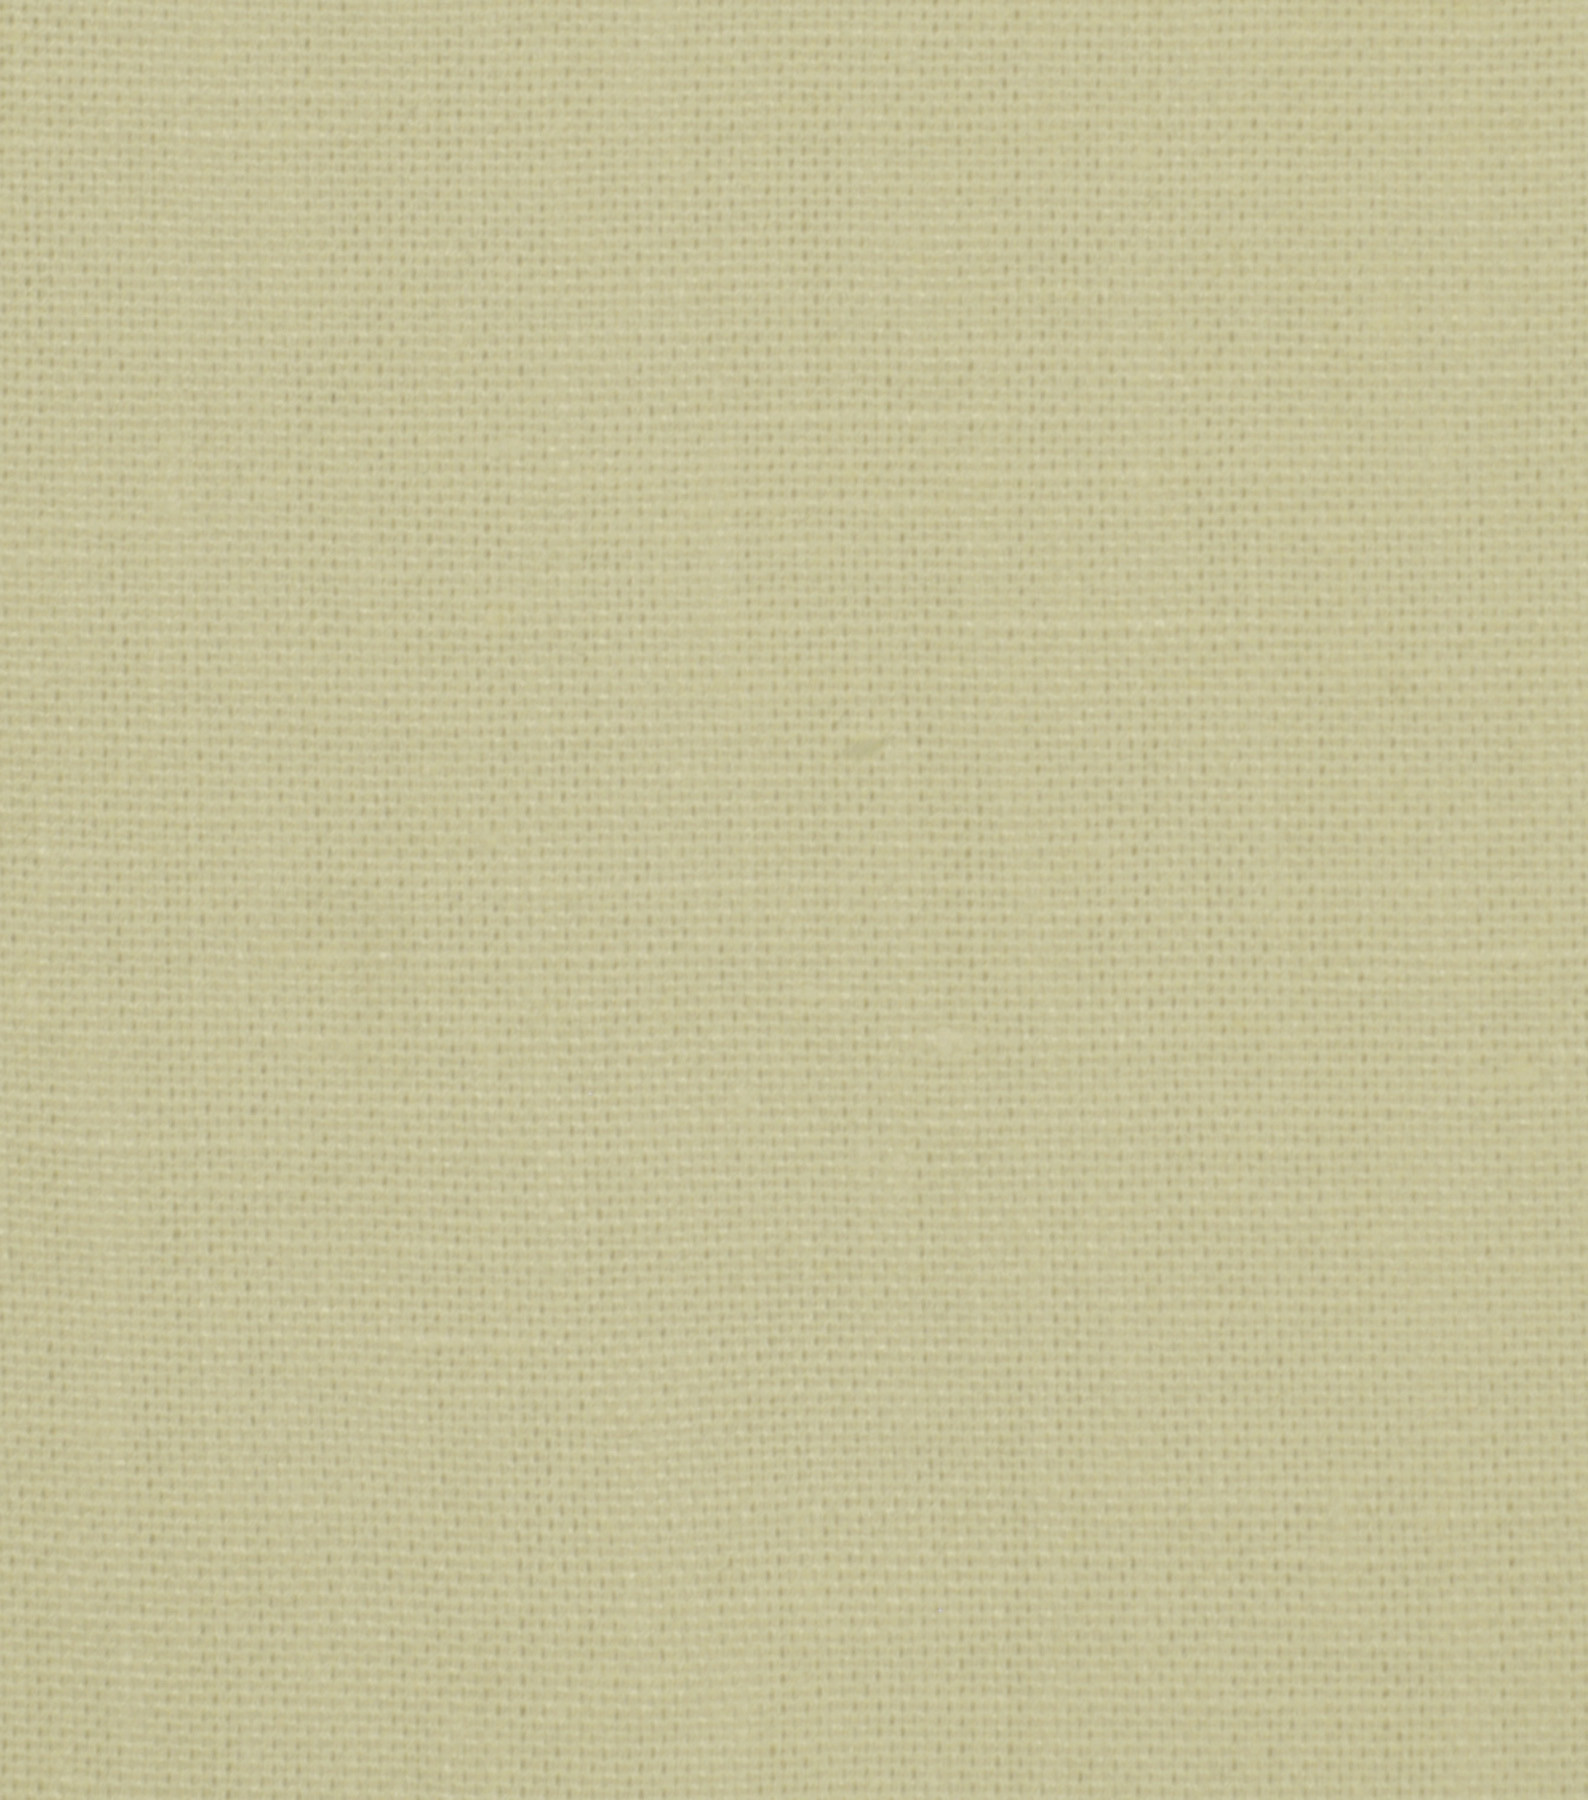 Home Decor 8\u0022x8\u0022 Fabric Swatch-Solid Fabric Signature Series Kilrush Ecru